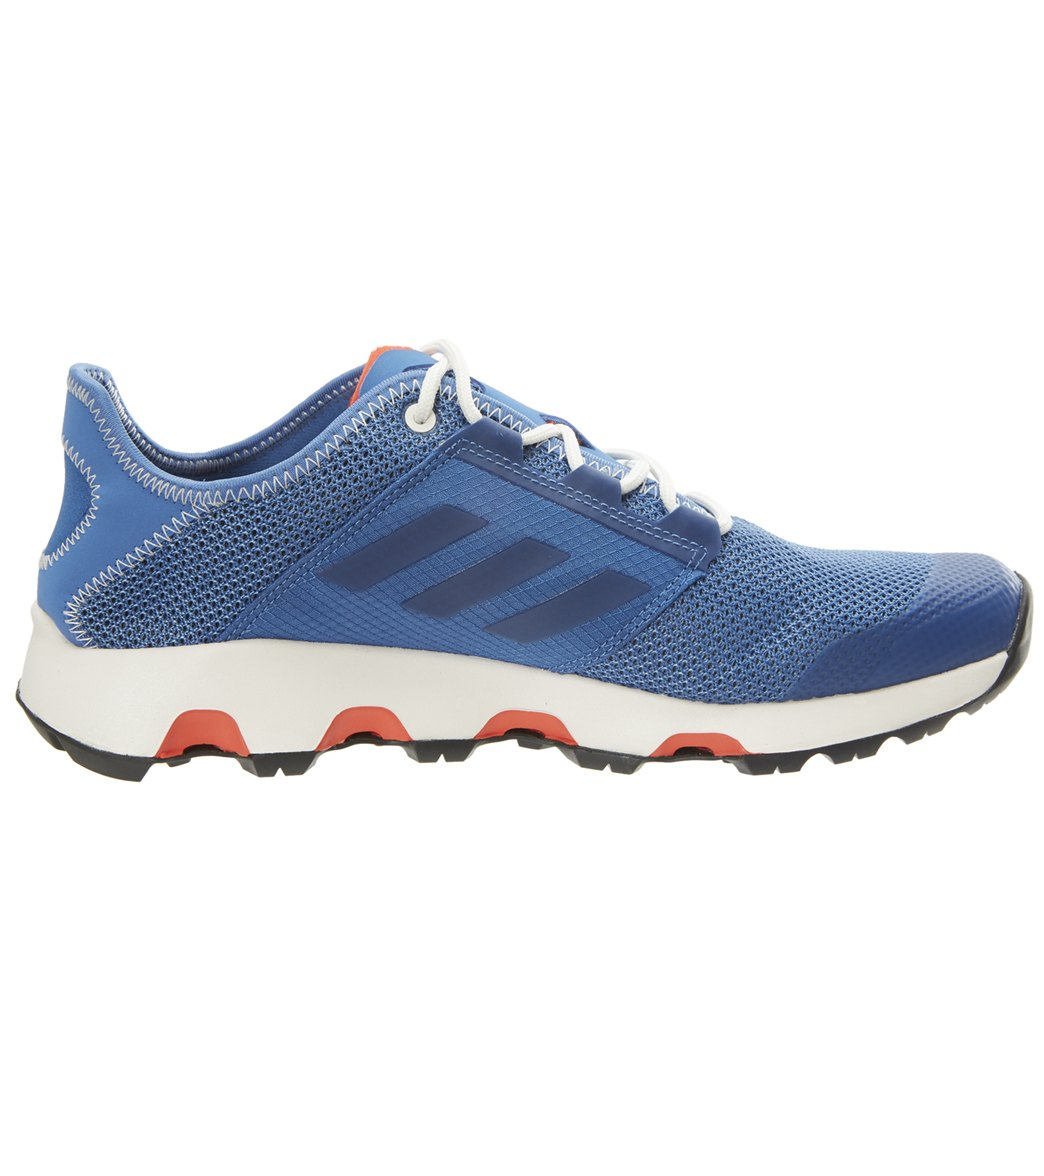 73d8c0941b29 Adidas Men's Climacool Voyager Water Shoes